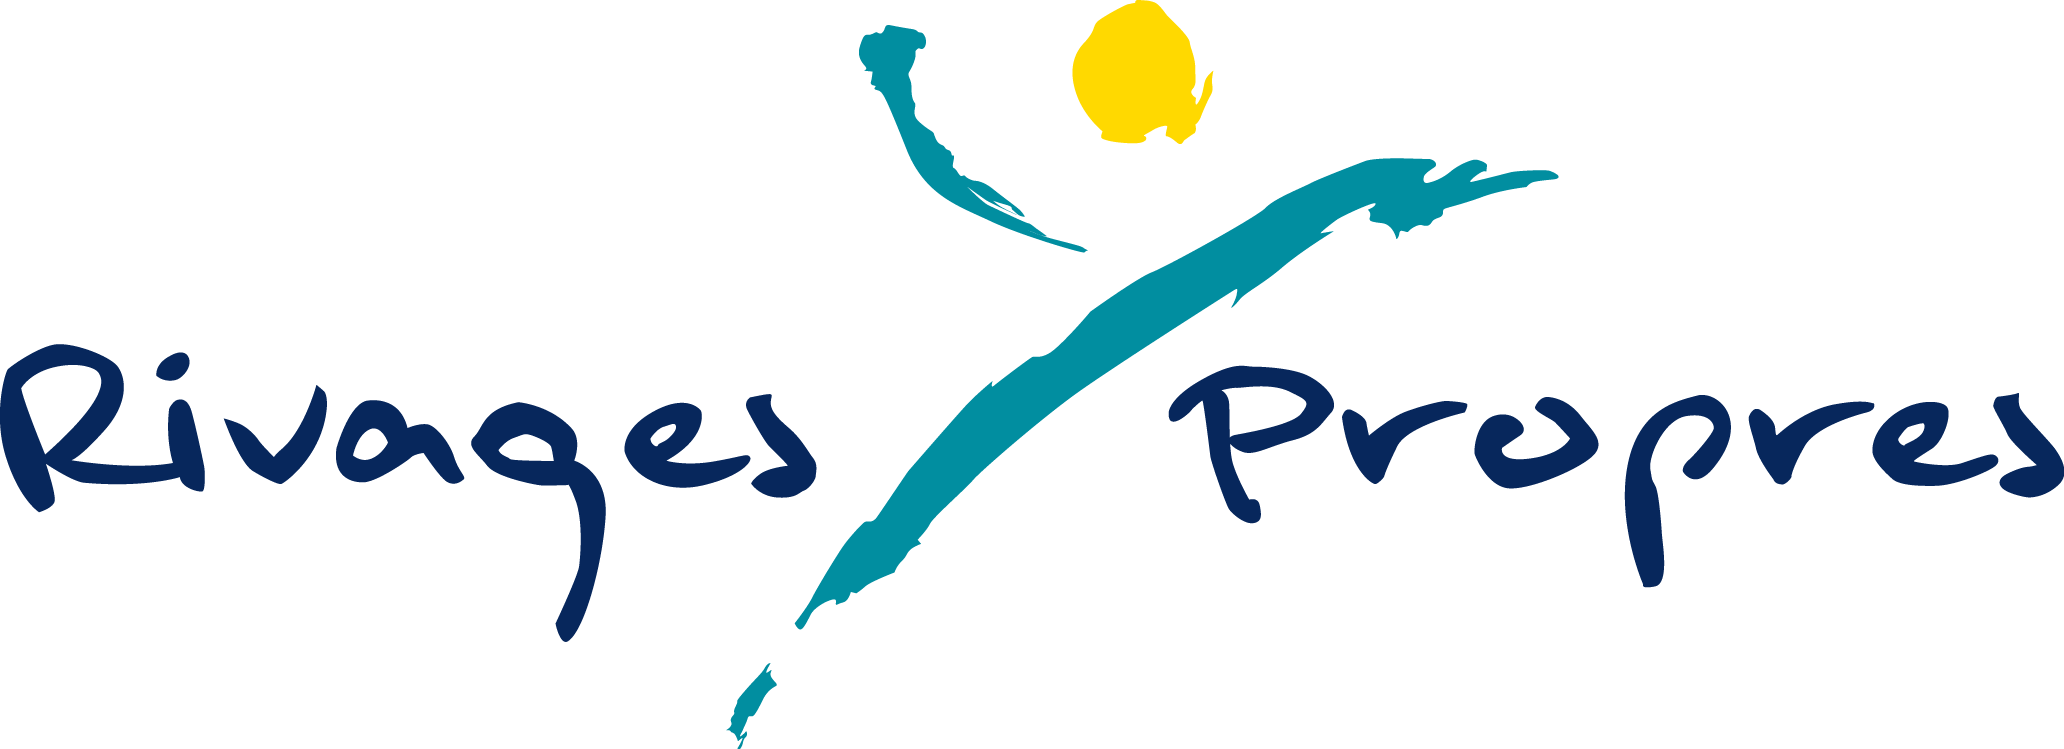 logo rivages propres